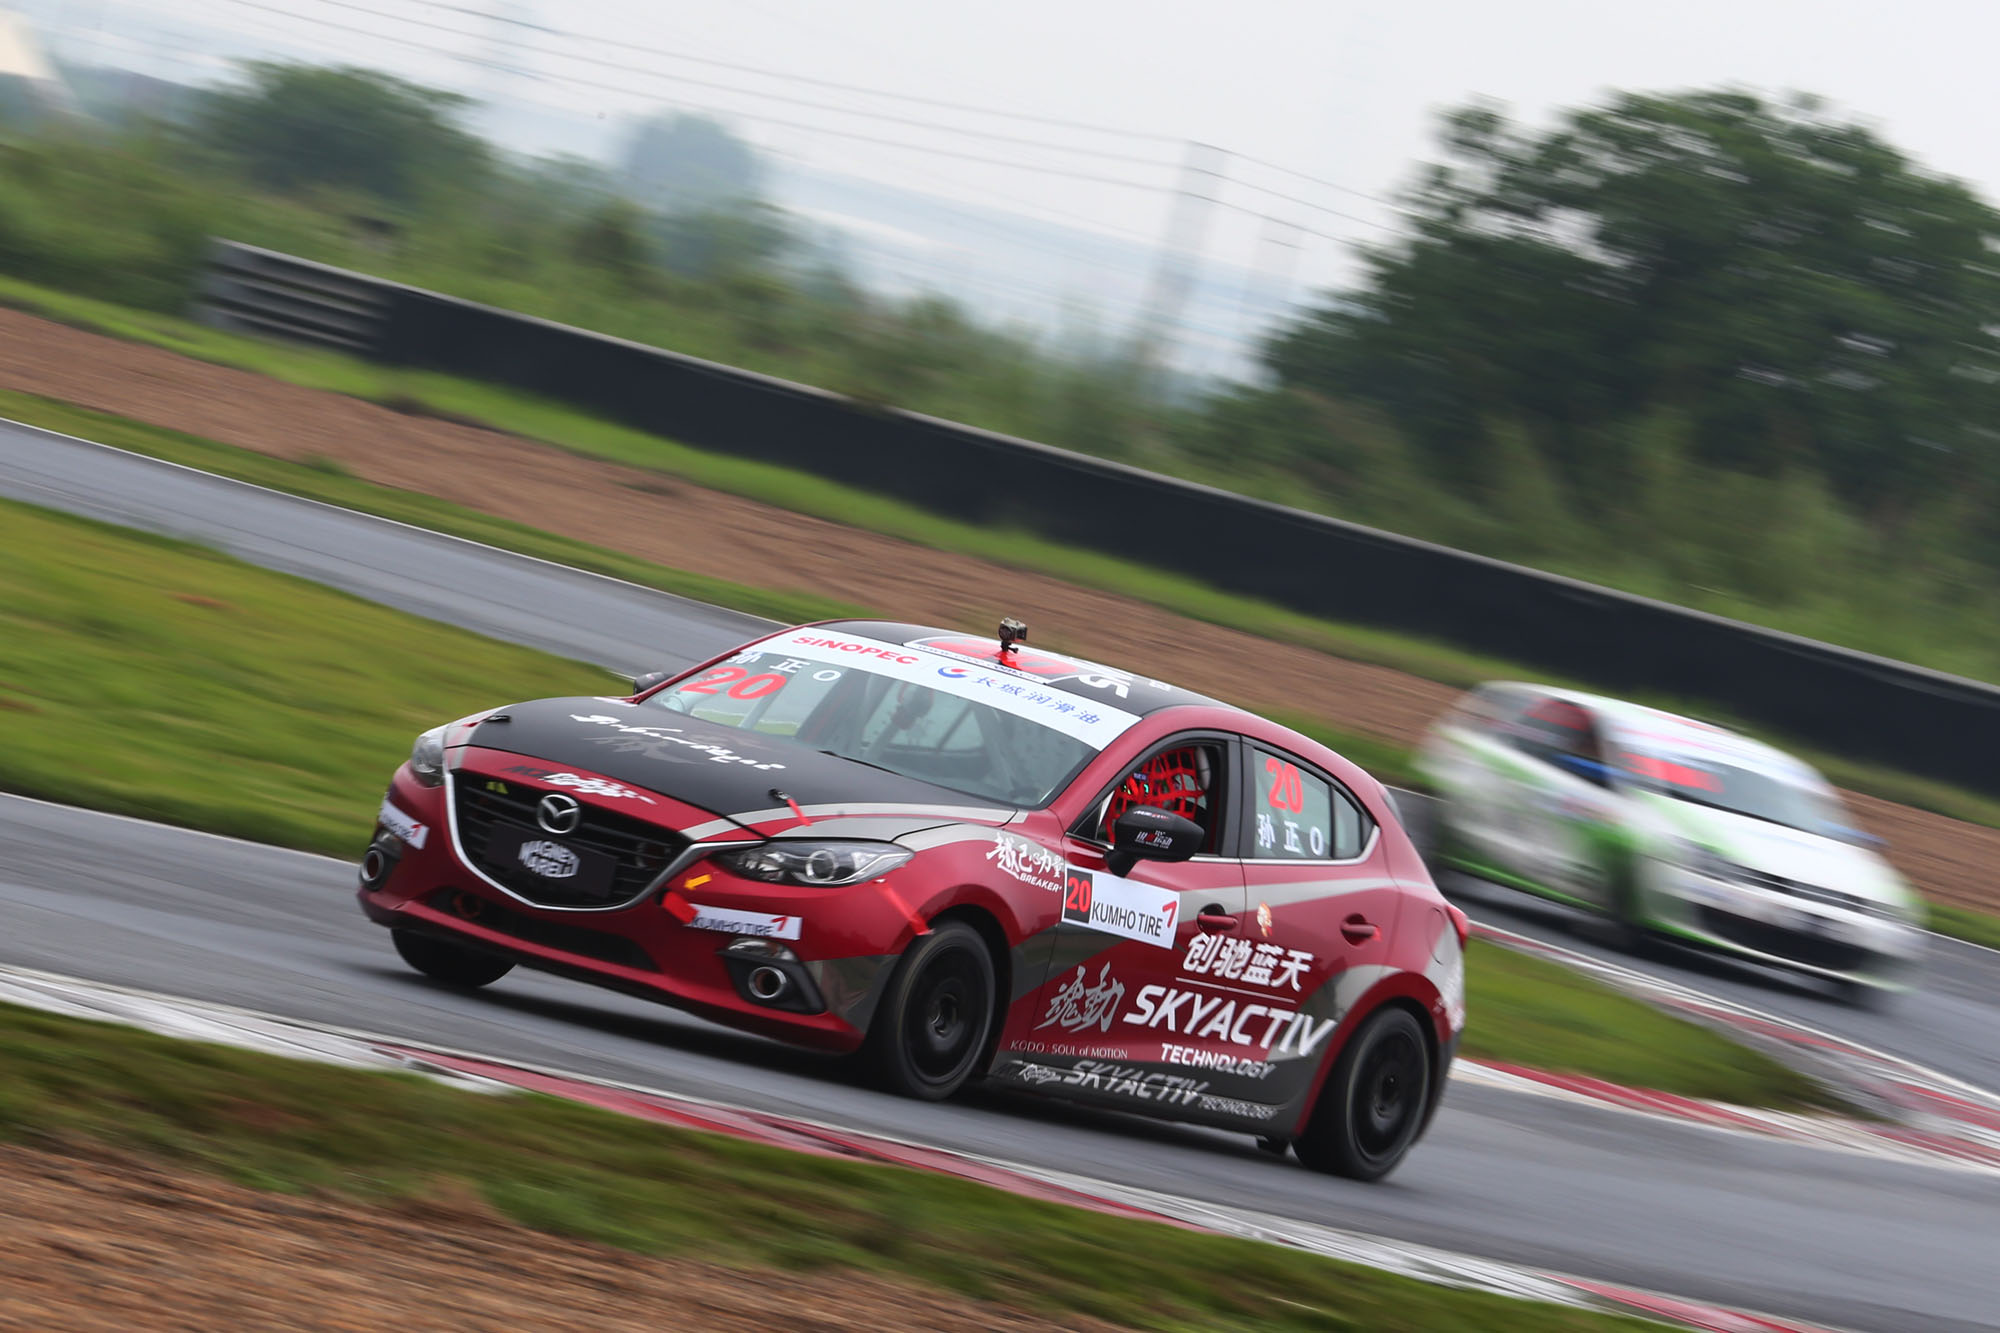 mz racing mazda motorsport mazda 6 and mazda 3 debut. Black Bedroom Furniture Sets. Home Design Ideas